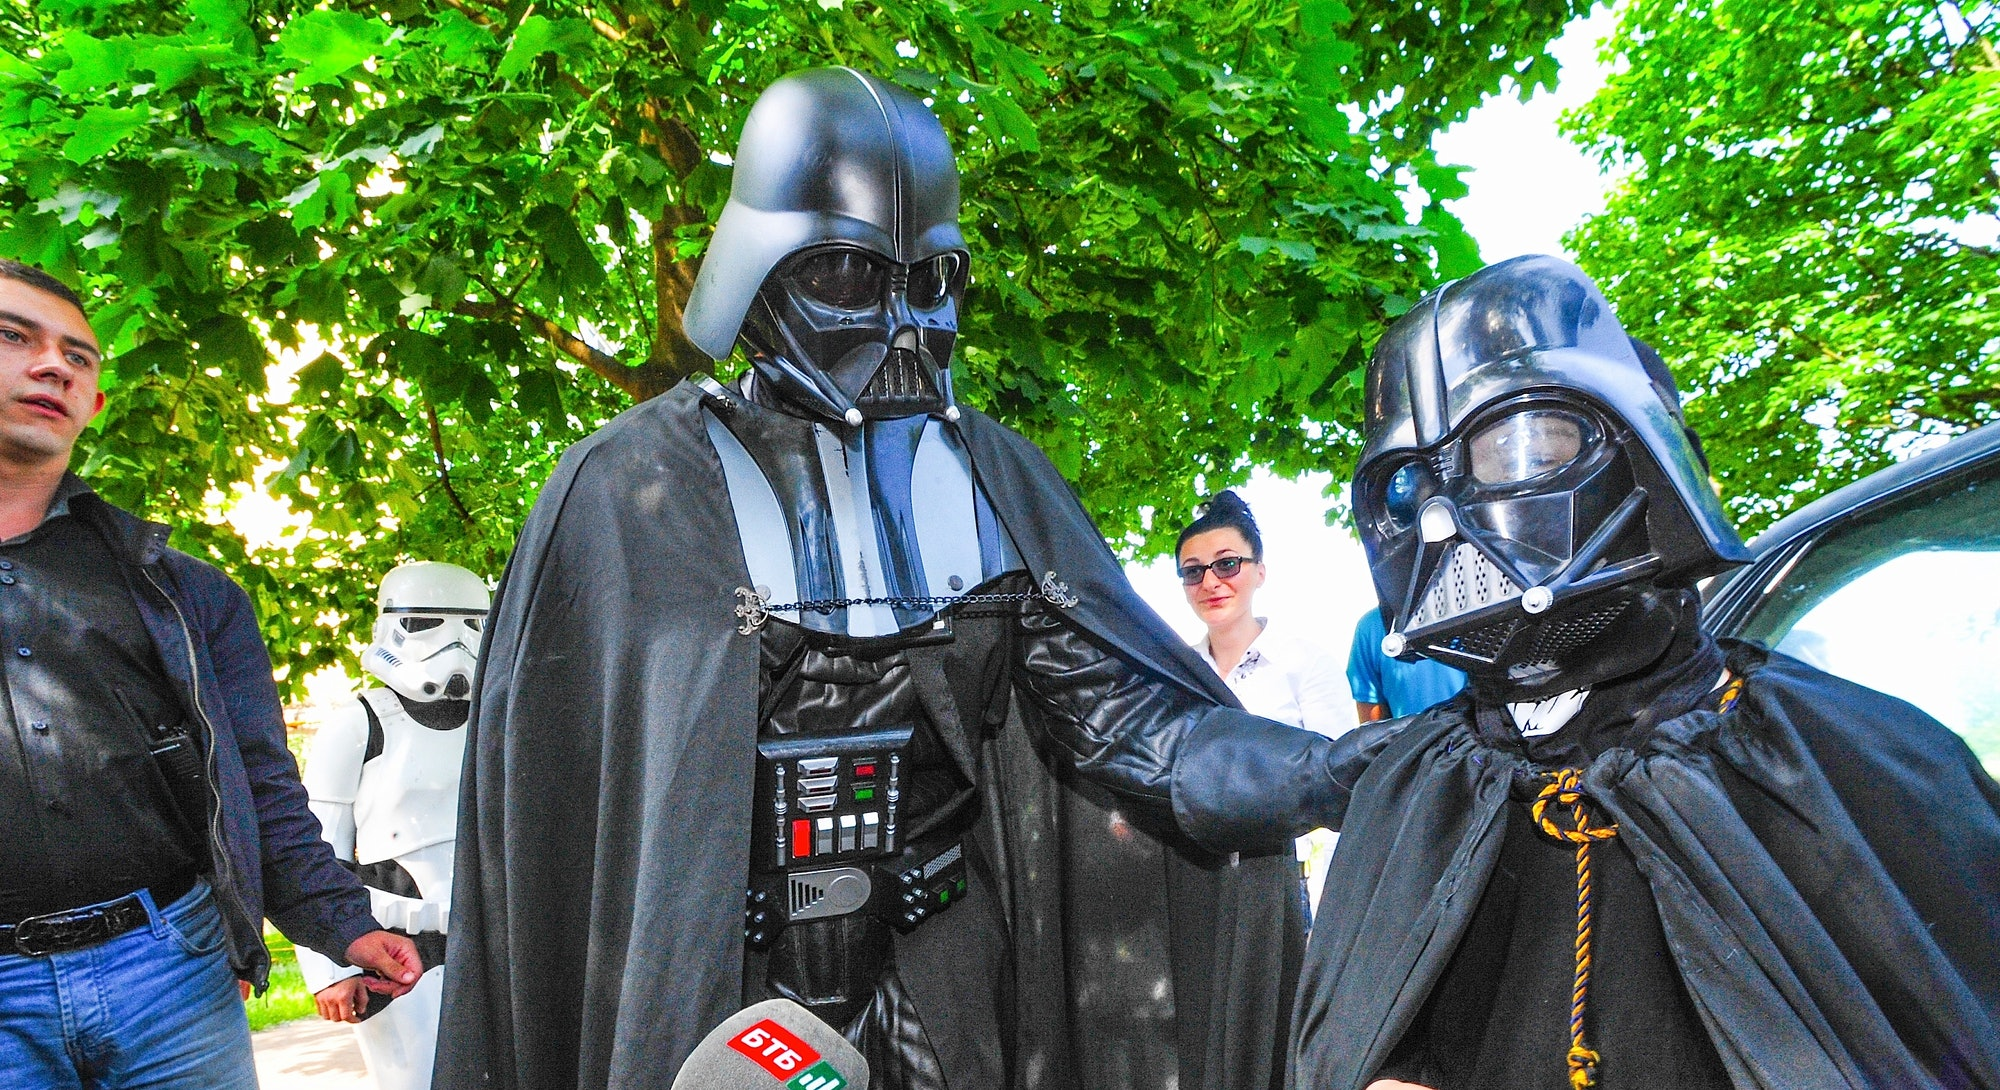 The 2014 presidential candidate Darth Vader meets with a young fan.